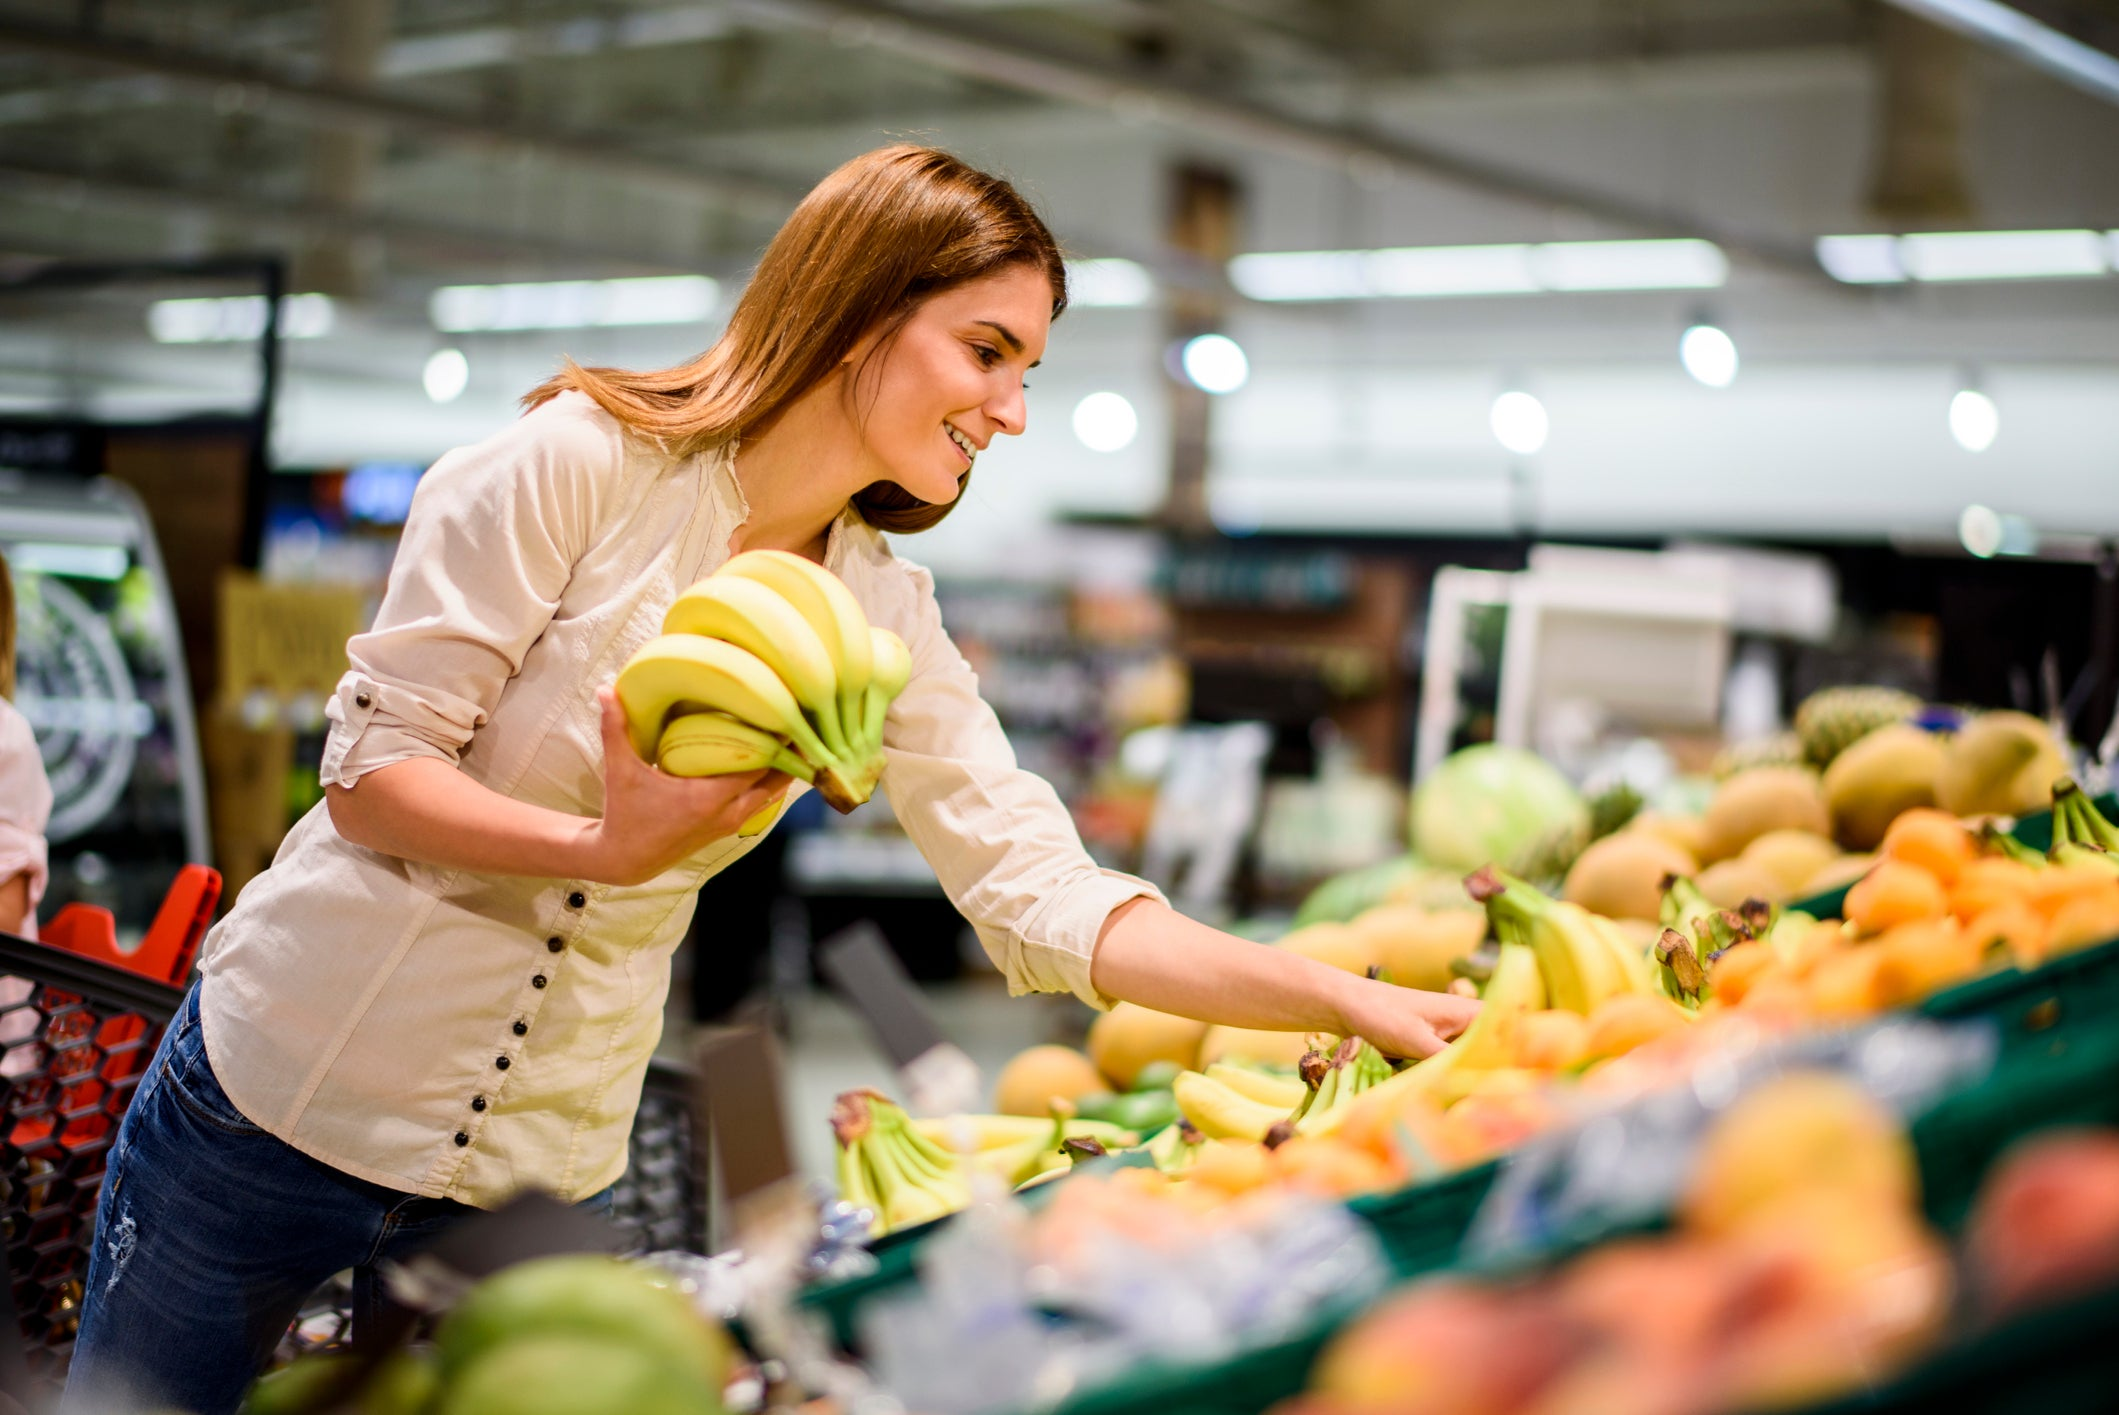 August supermarket opening times: When are Tesco, Aldi and Sainsbury's open this bank holiday Monday?